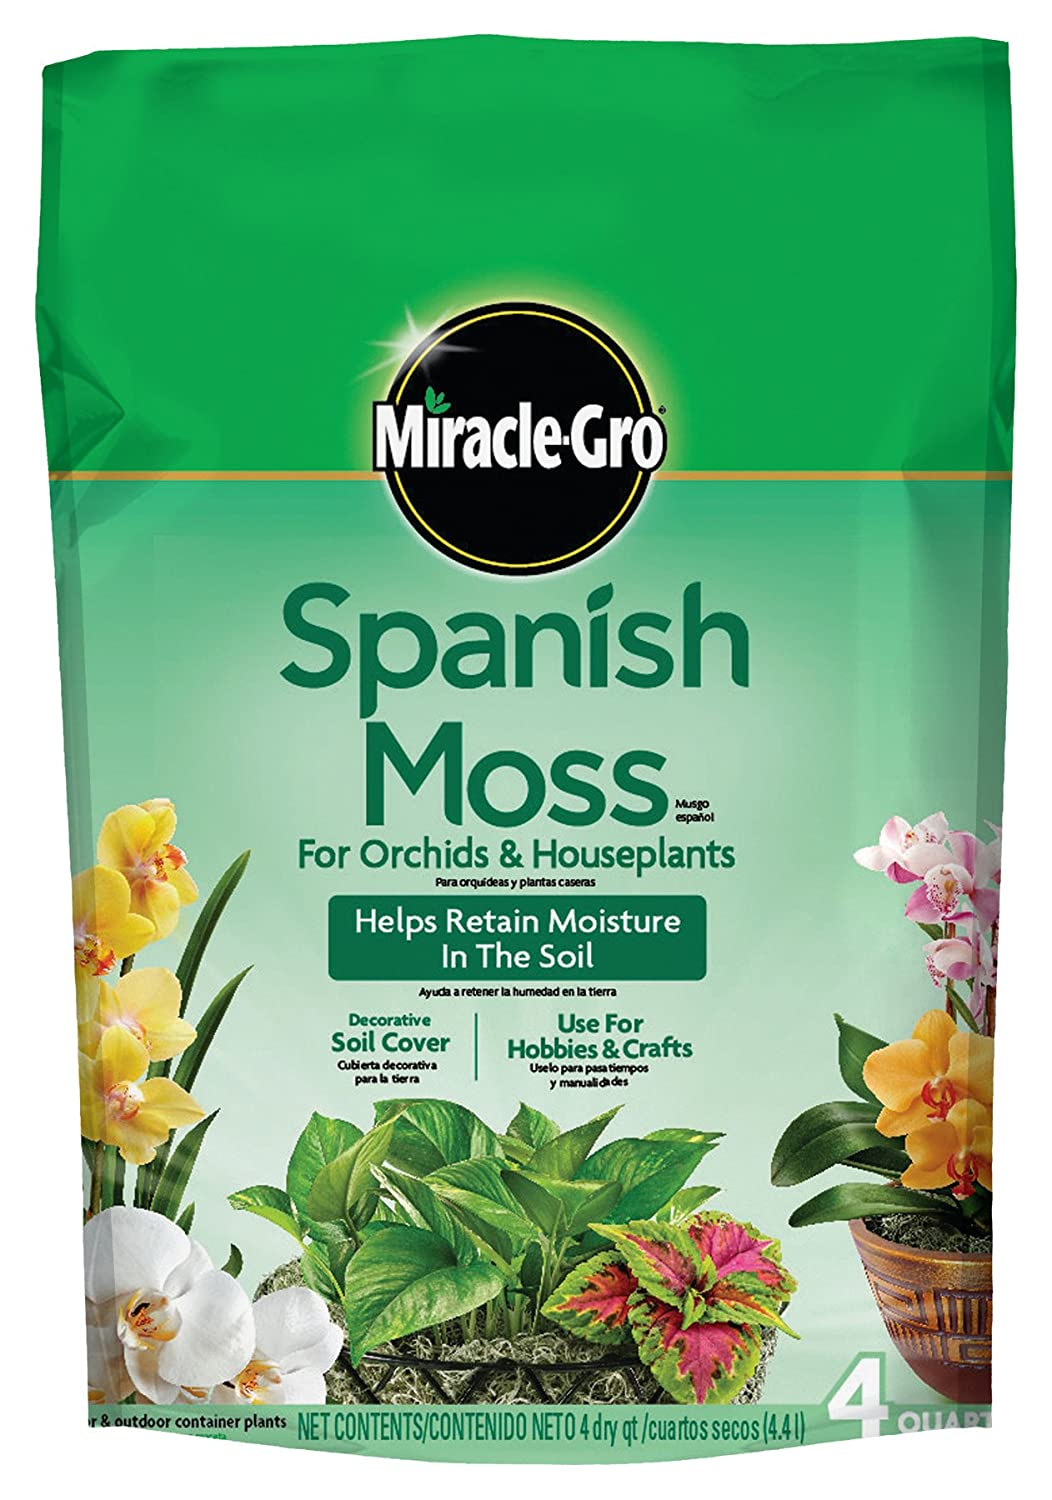 Spanish moss for crafts - Amazon Com Miracle Gro Spanish Moss 4 Quart For Hobbies Crafts Or As A Decorative Soil Cover Currently Ships To Select Northeastern Midwestern